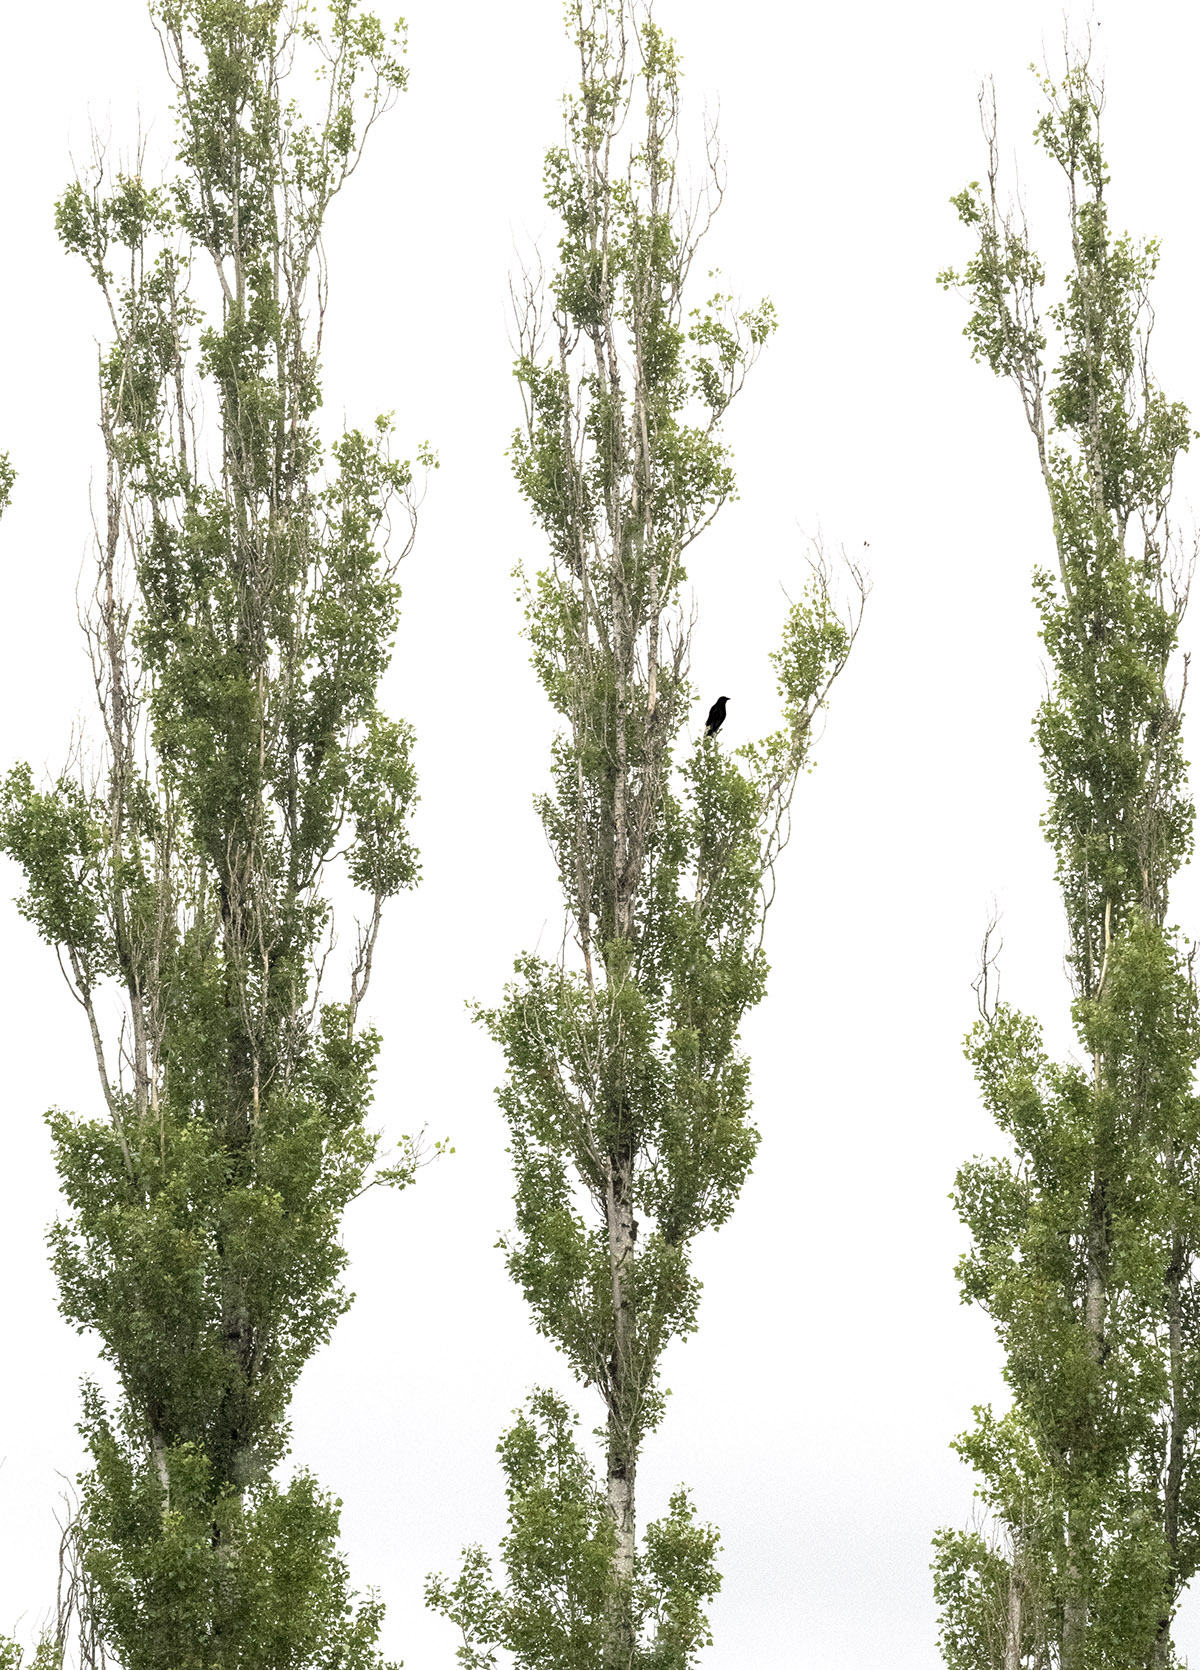 Crow in the poplars